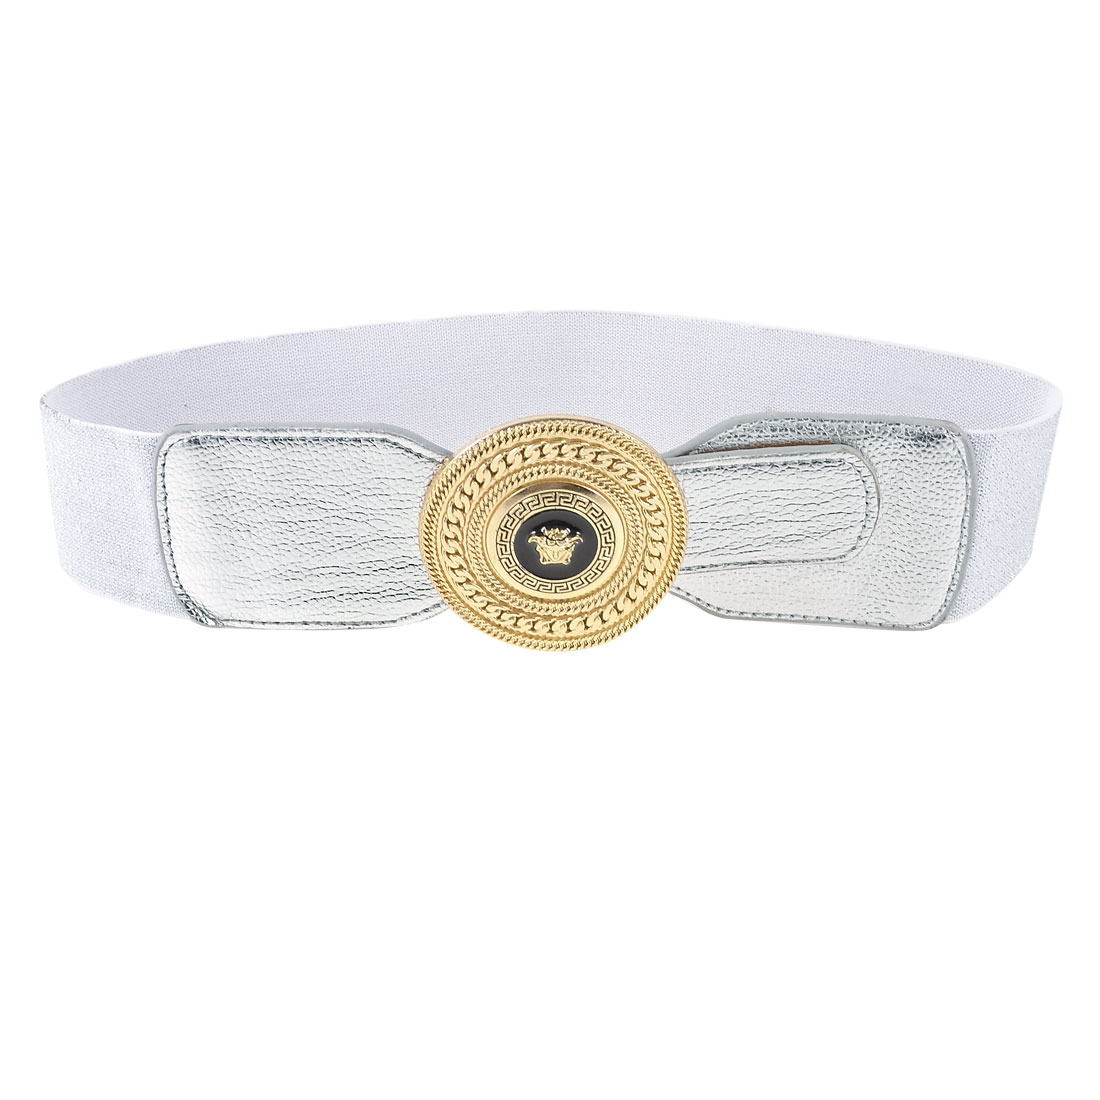 Single Pin Buckle 6cm Width Stretchy Waist Cinch Band Belt Silver Tone for Woman